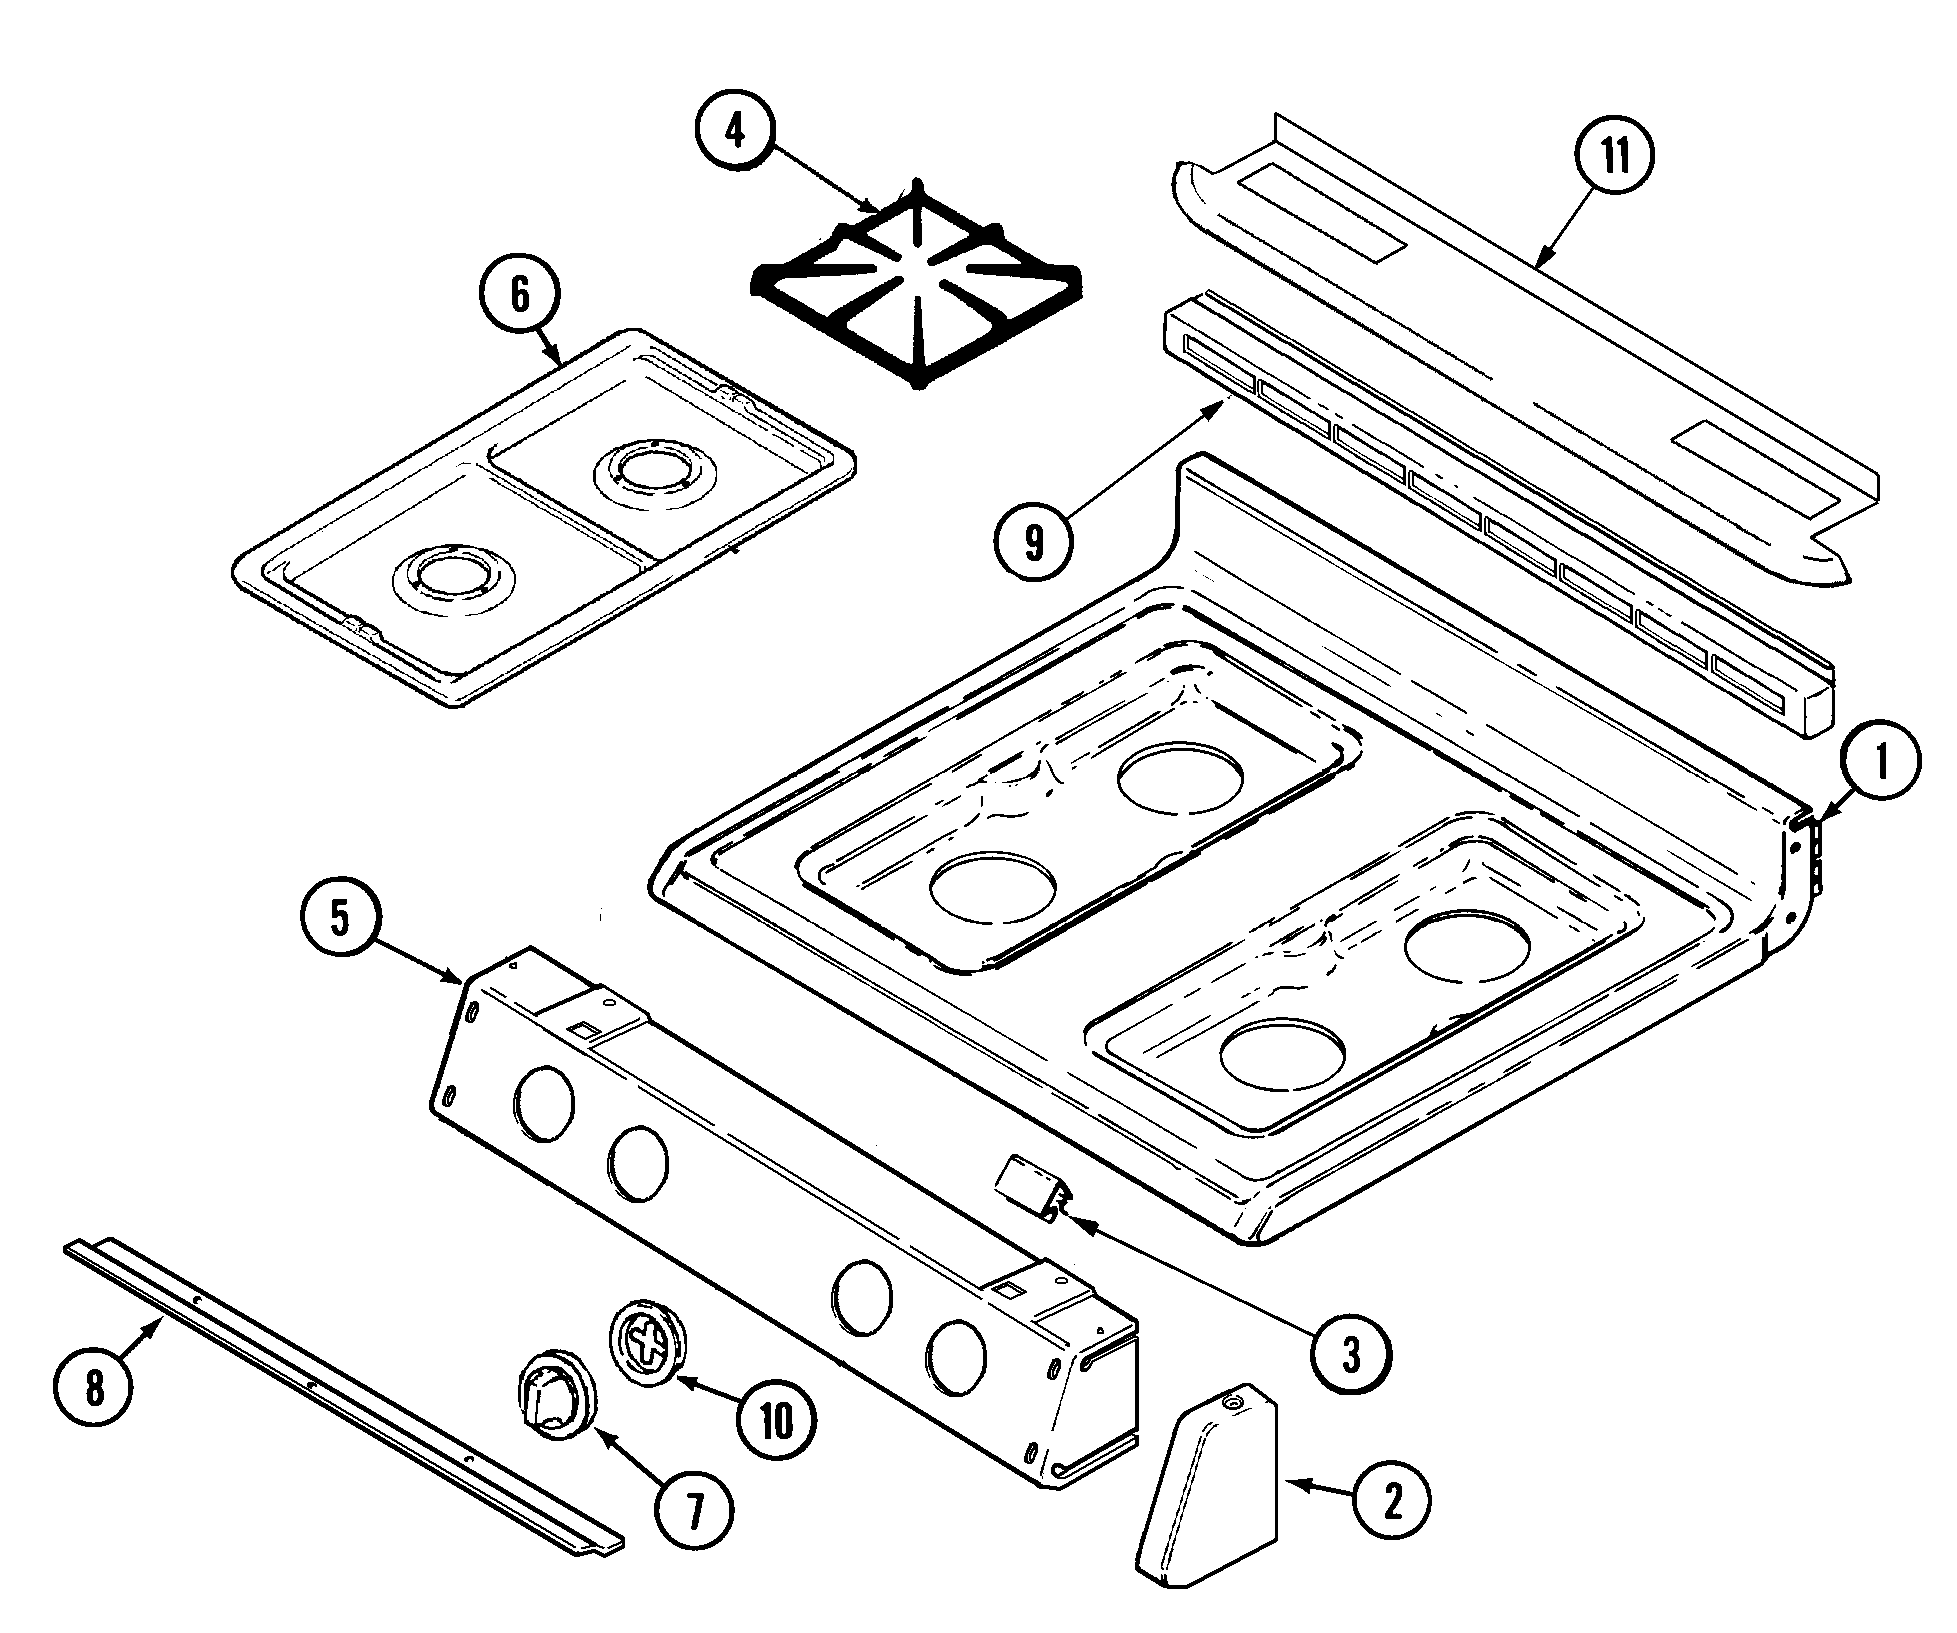 TOP ASSEMBLY Diagram & Parts List for Model mgr5770adw